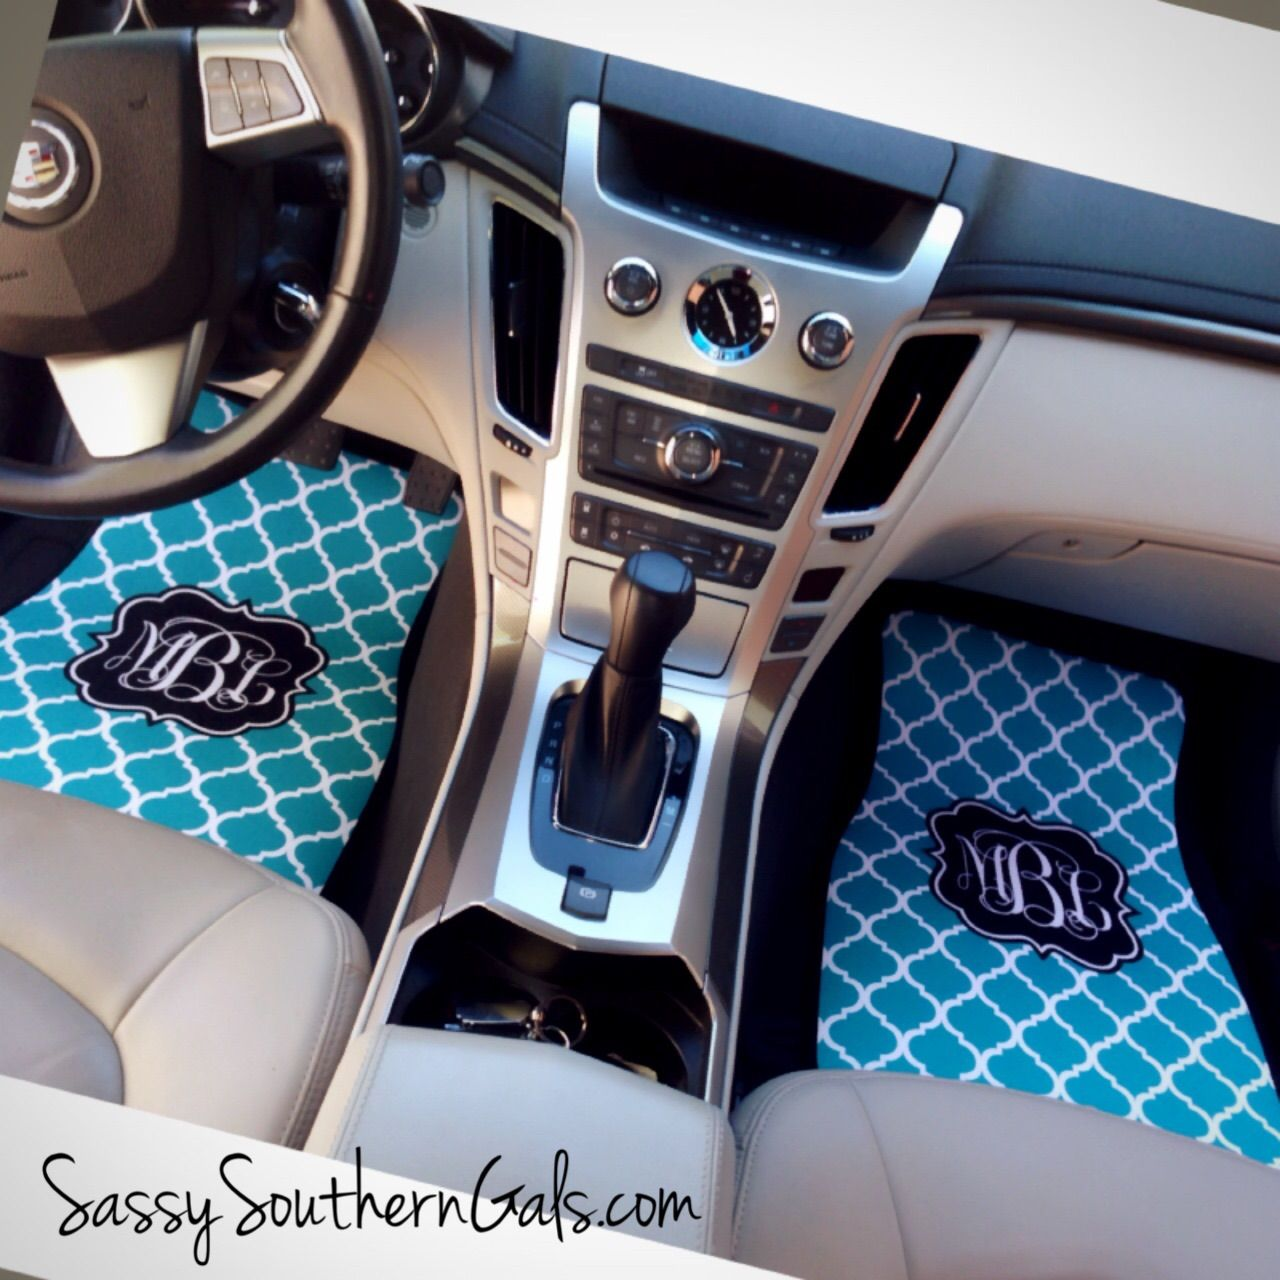 Car decals design your own - Monogrammed Car Mats Personalized Car Mats Sassy Southern Gals Boutique Online Store Powered